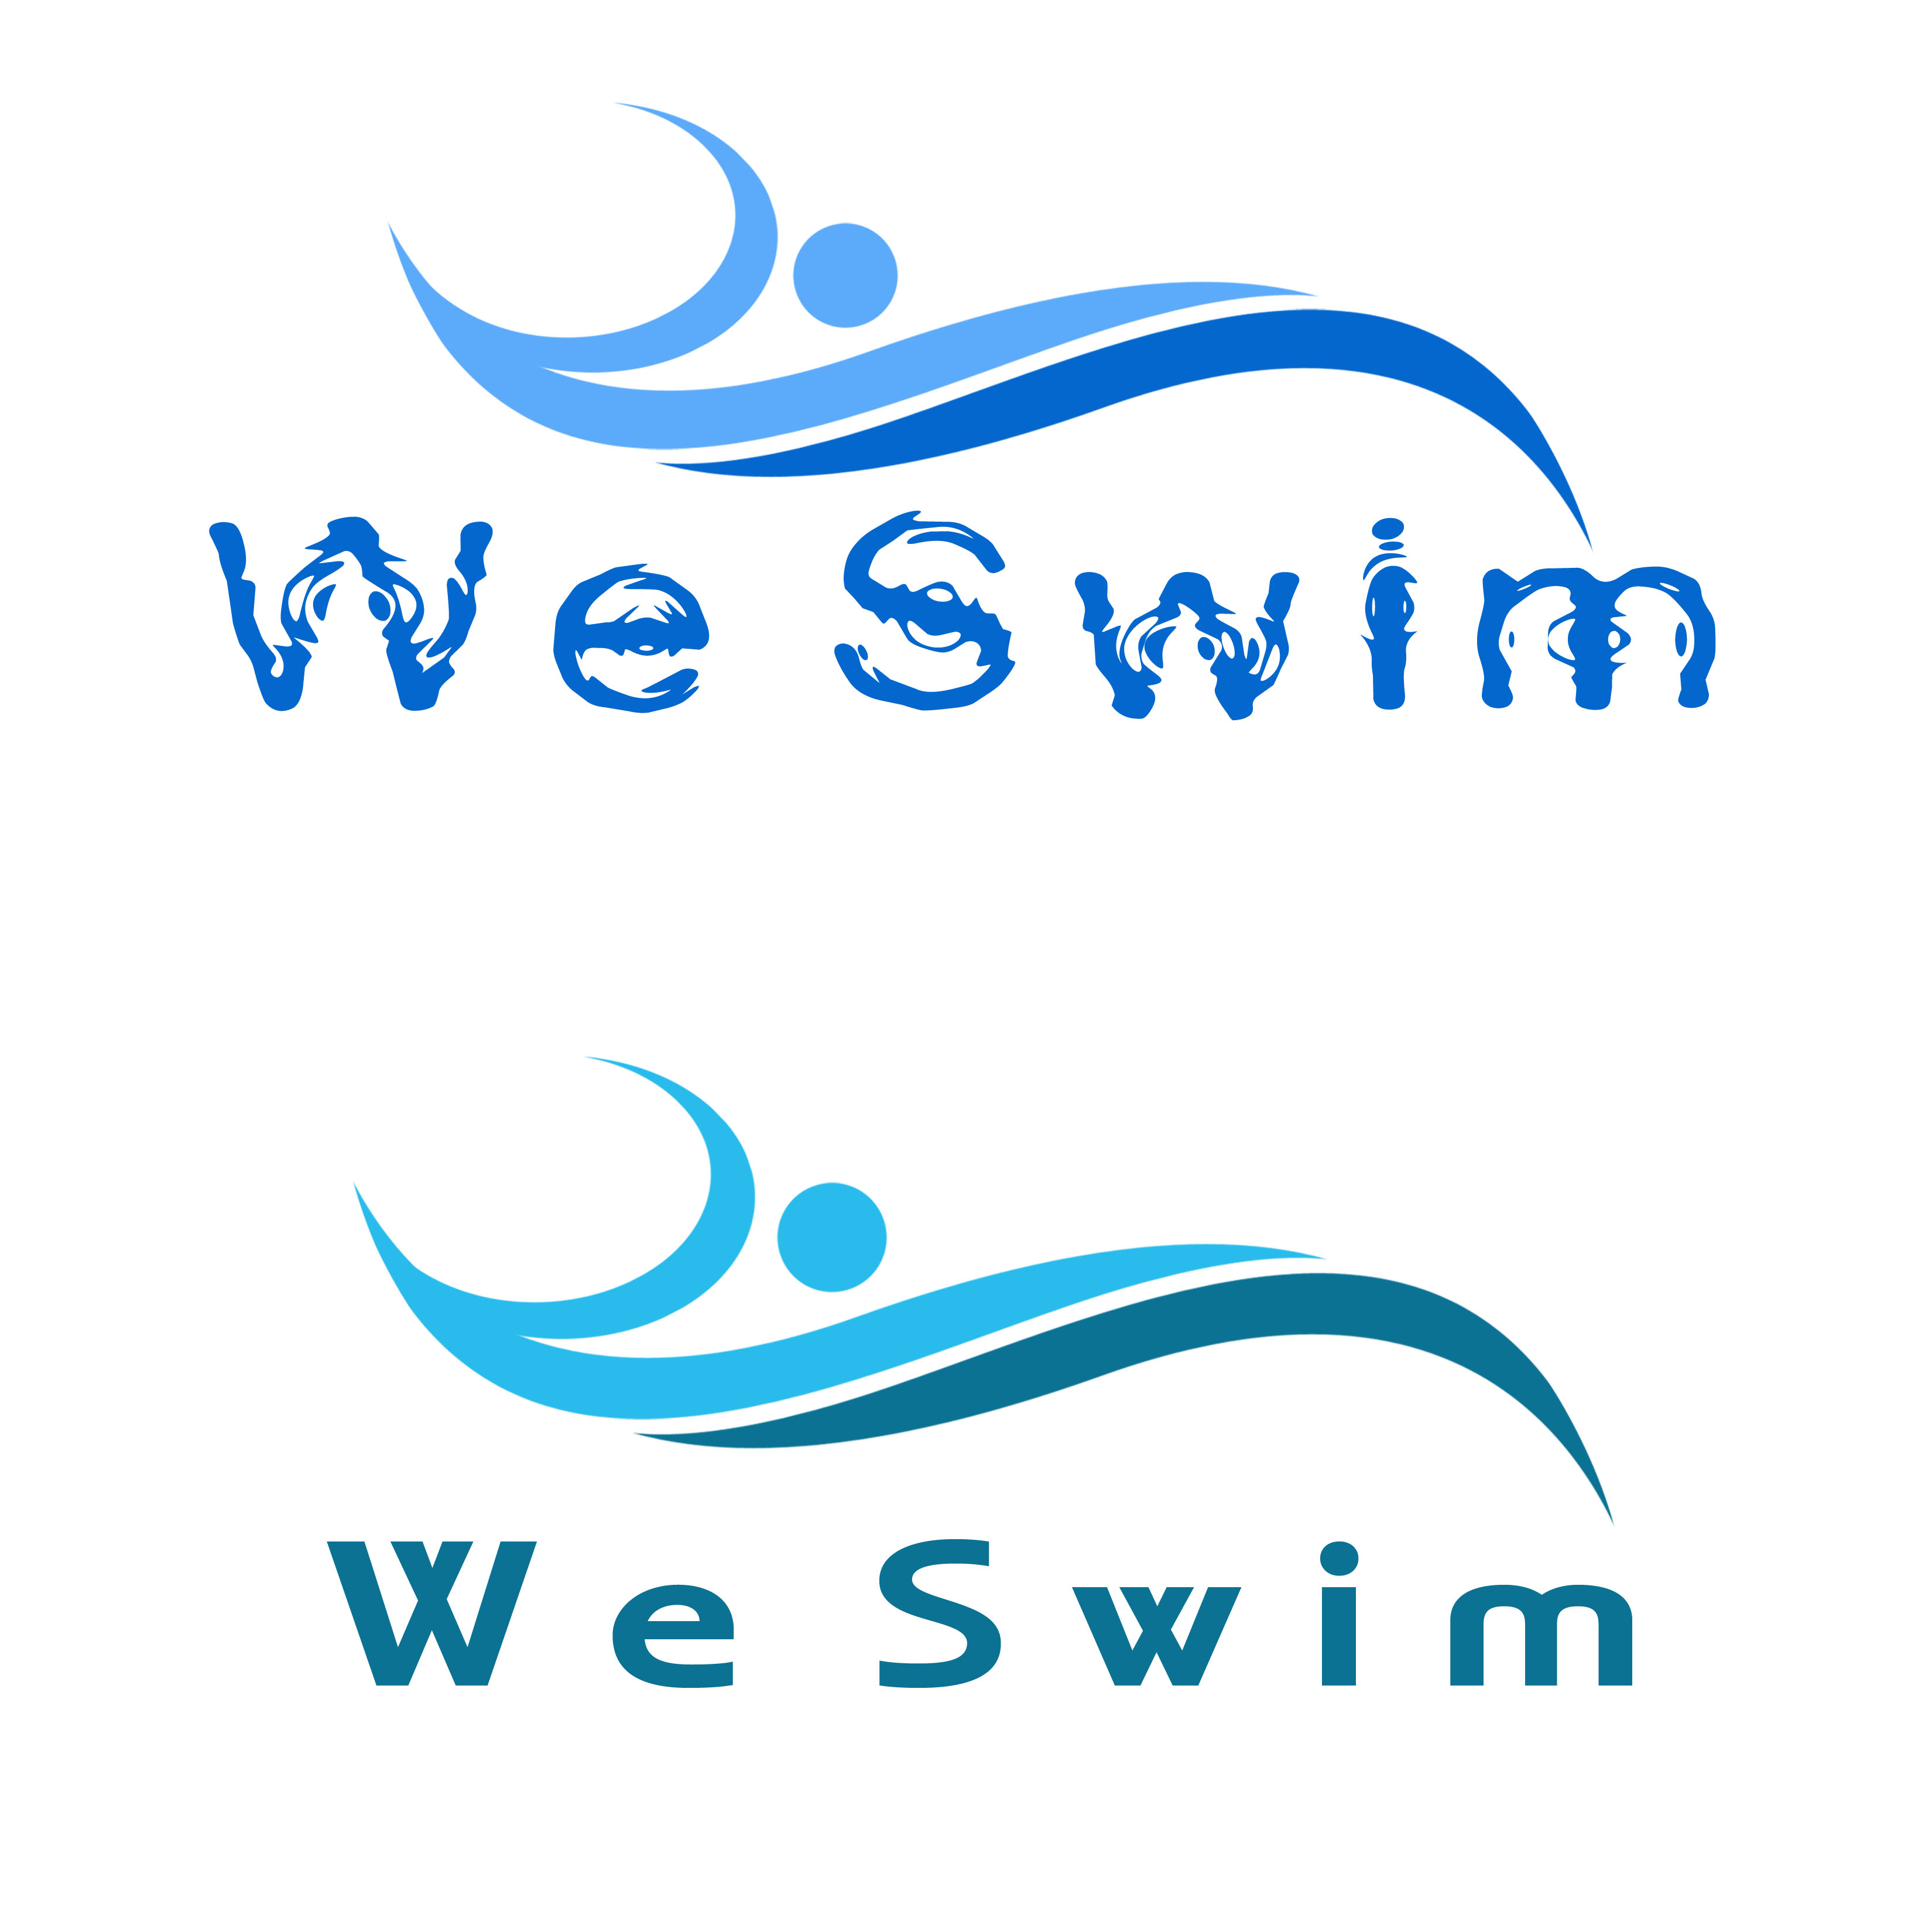 Logo Design by Allan Esclamado - Entry No. 65 in the Logo Design Contest Captivating Logo Design for We Swim.